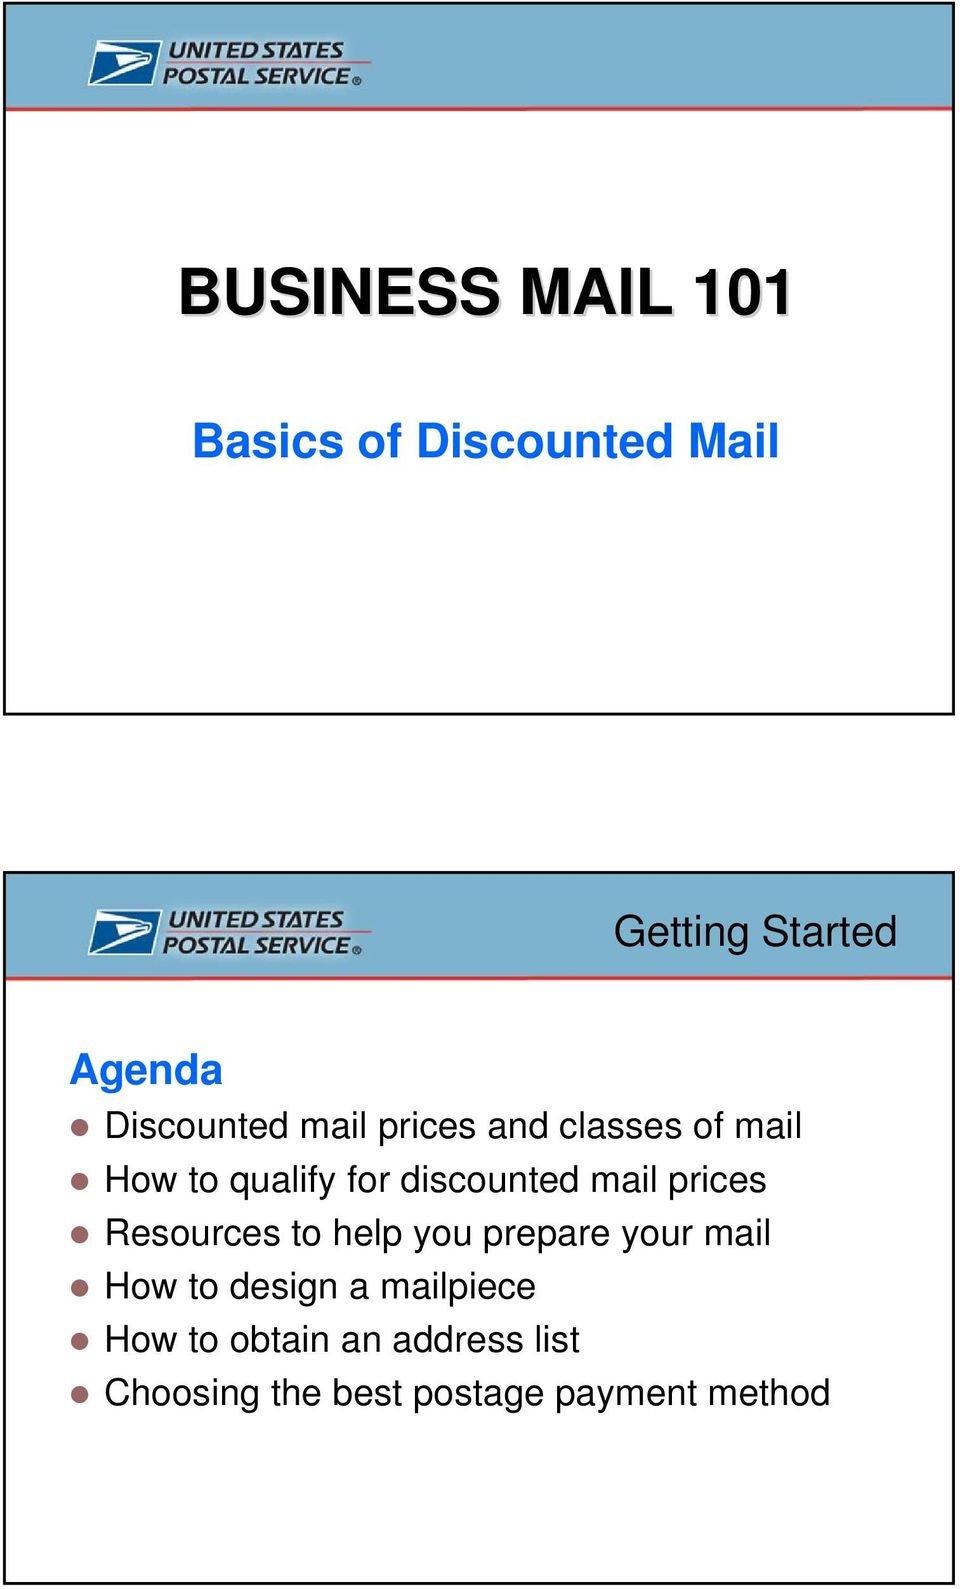 discounted mail prices Resources to help you prepare your mail How to